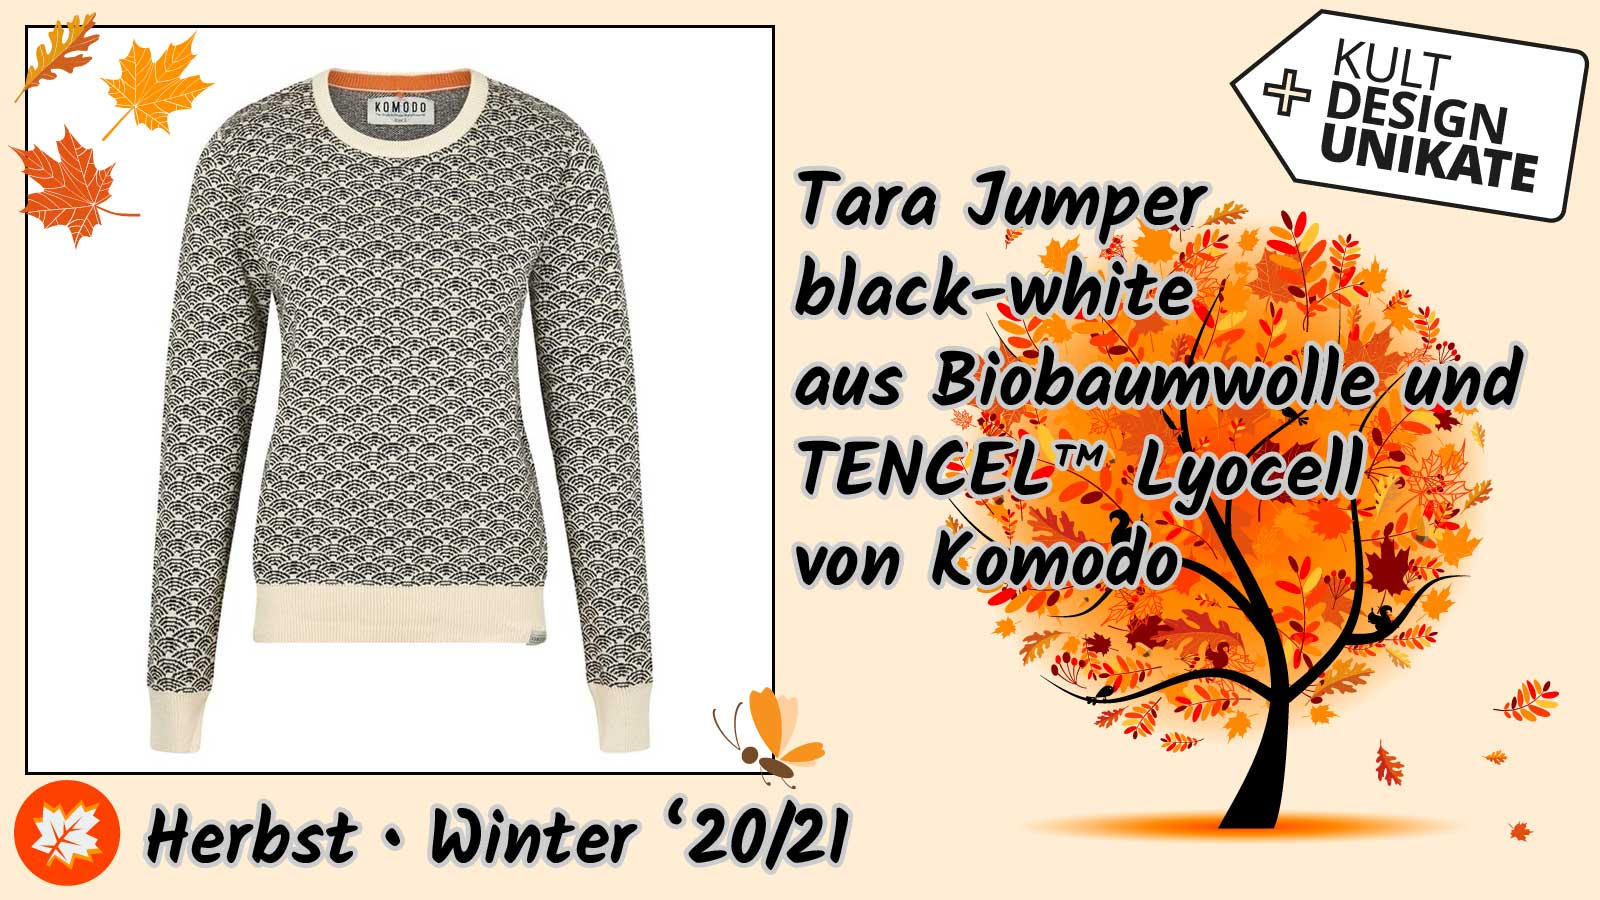 Komodo-Tara-Jumper-black-white